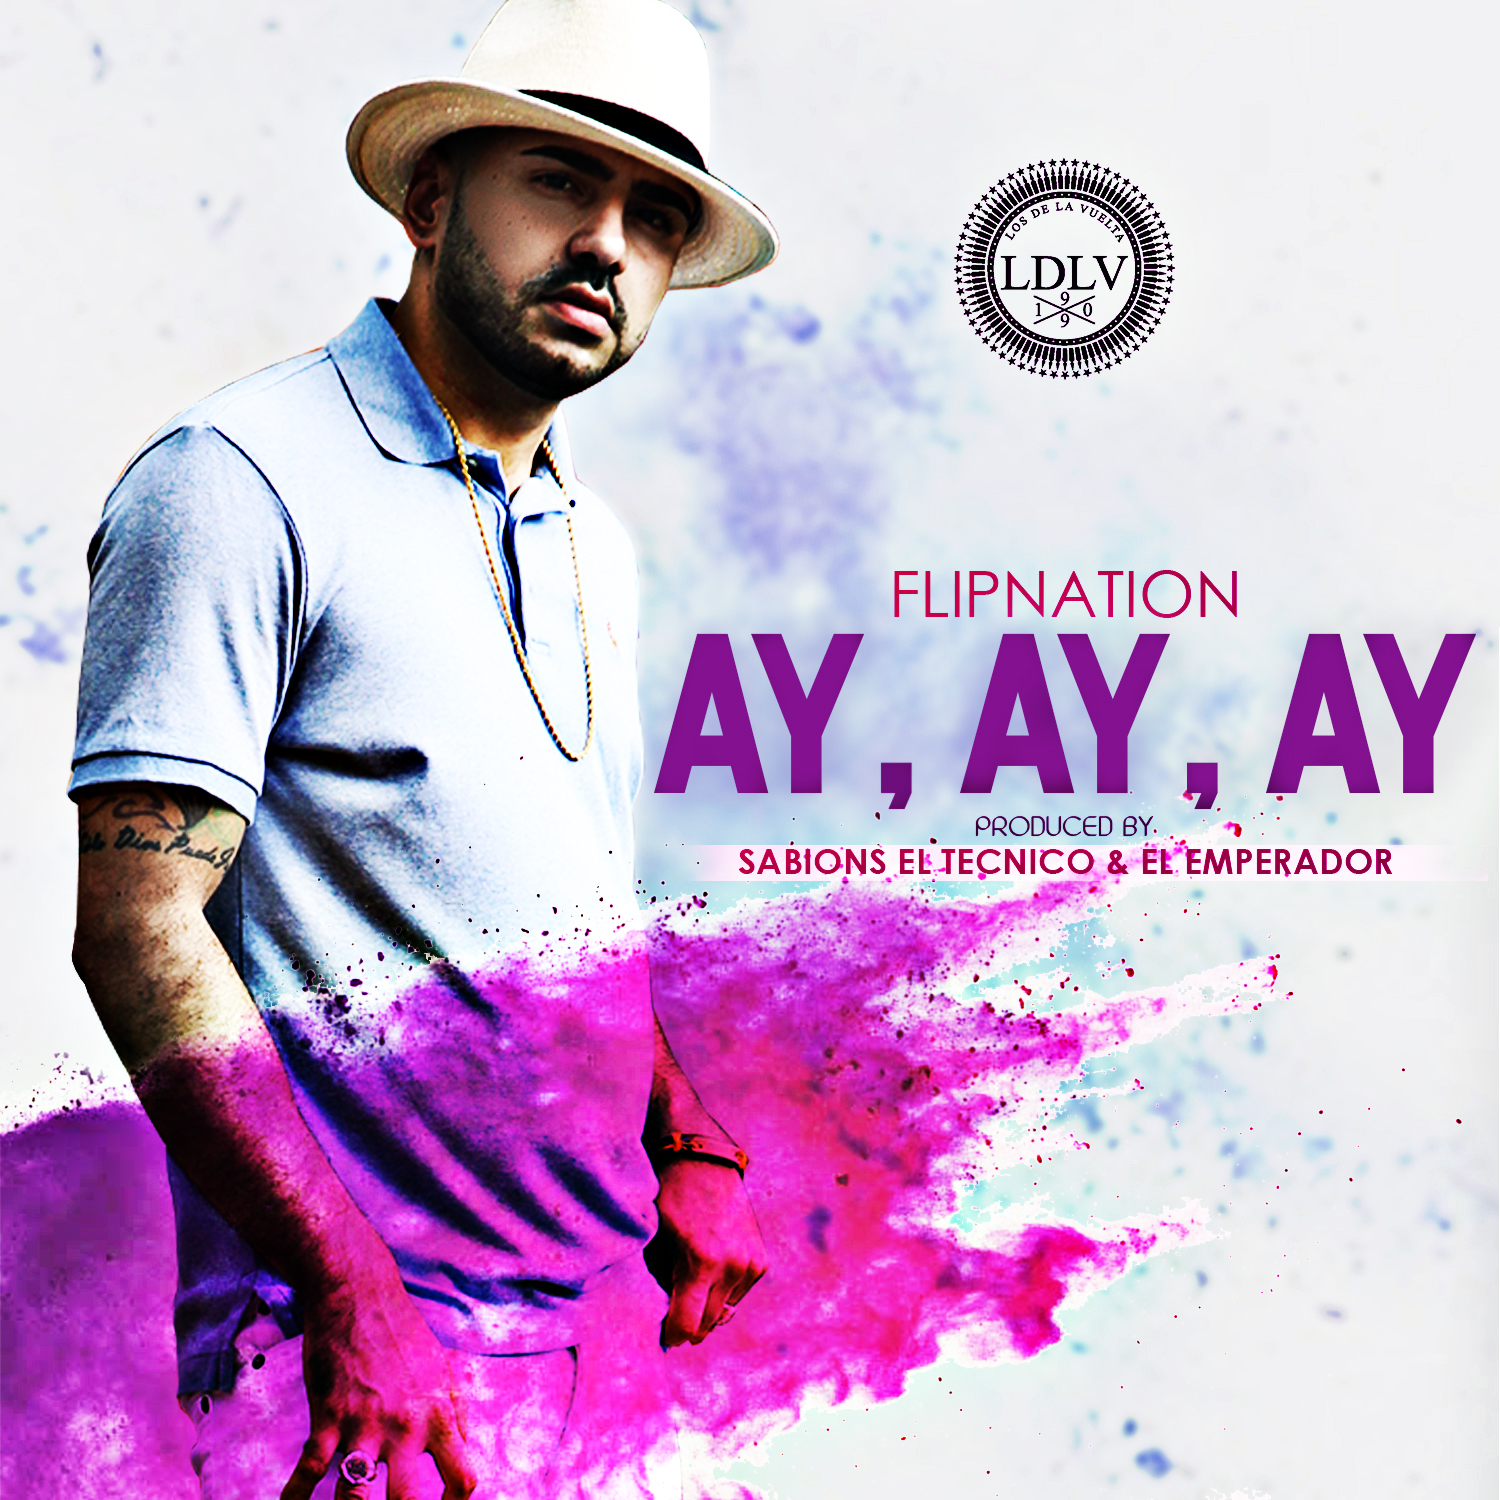 Flipnation – AY AY AY (Video Oficial)